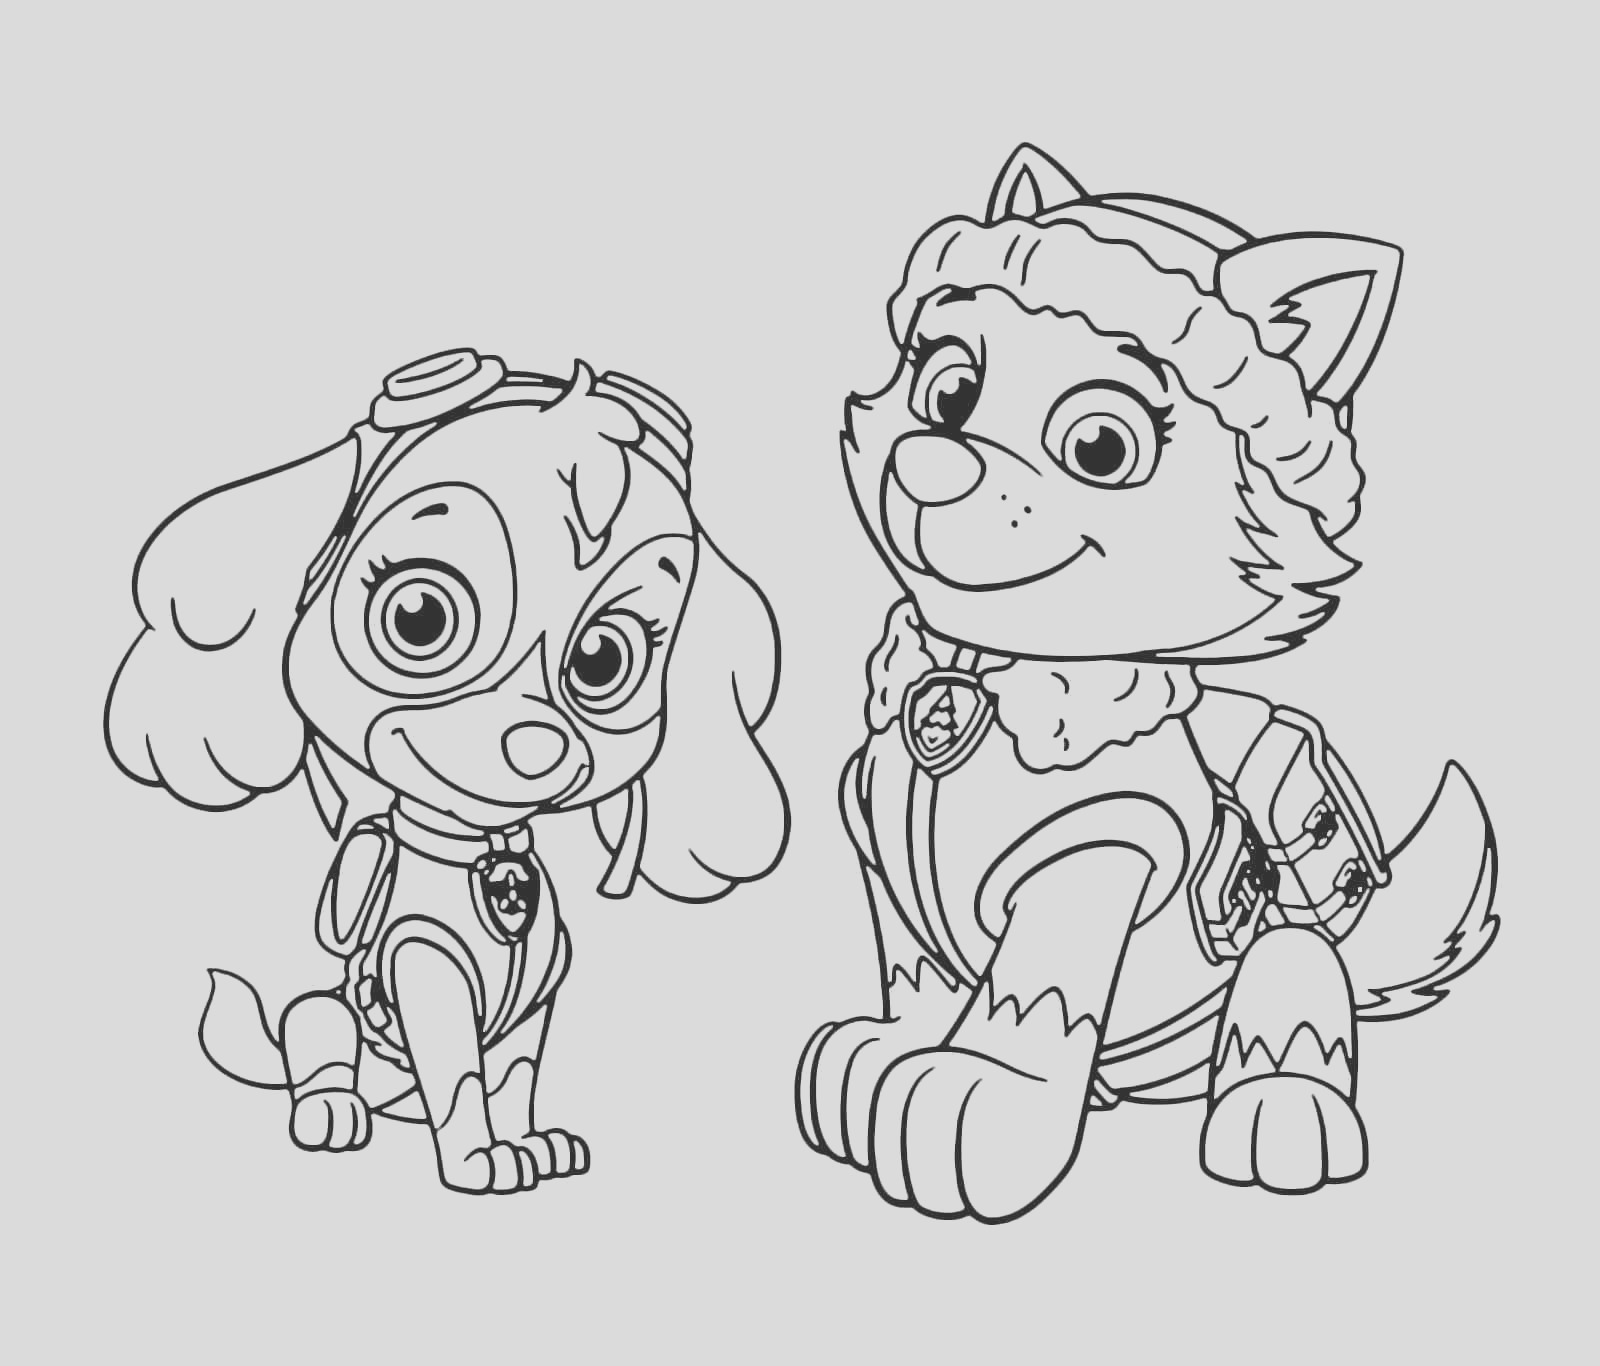 paw patrol everest and skye coloring pages